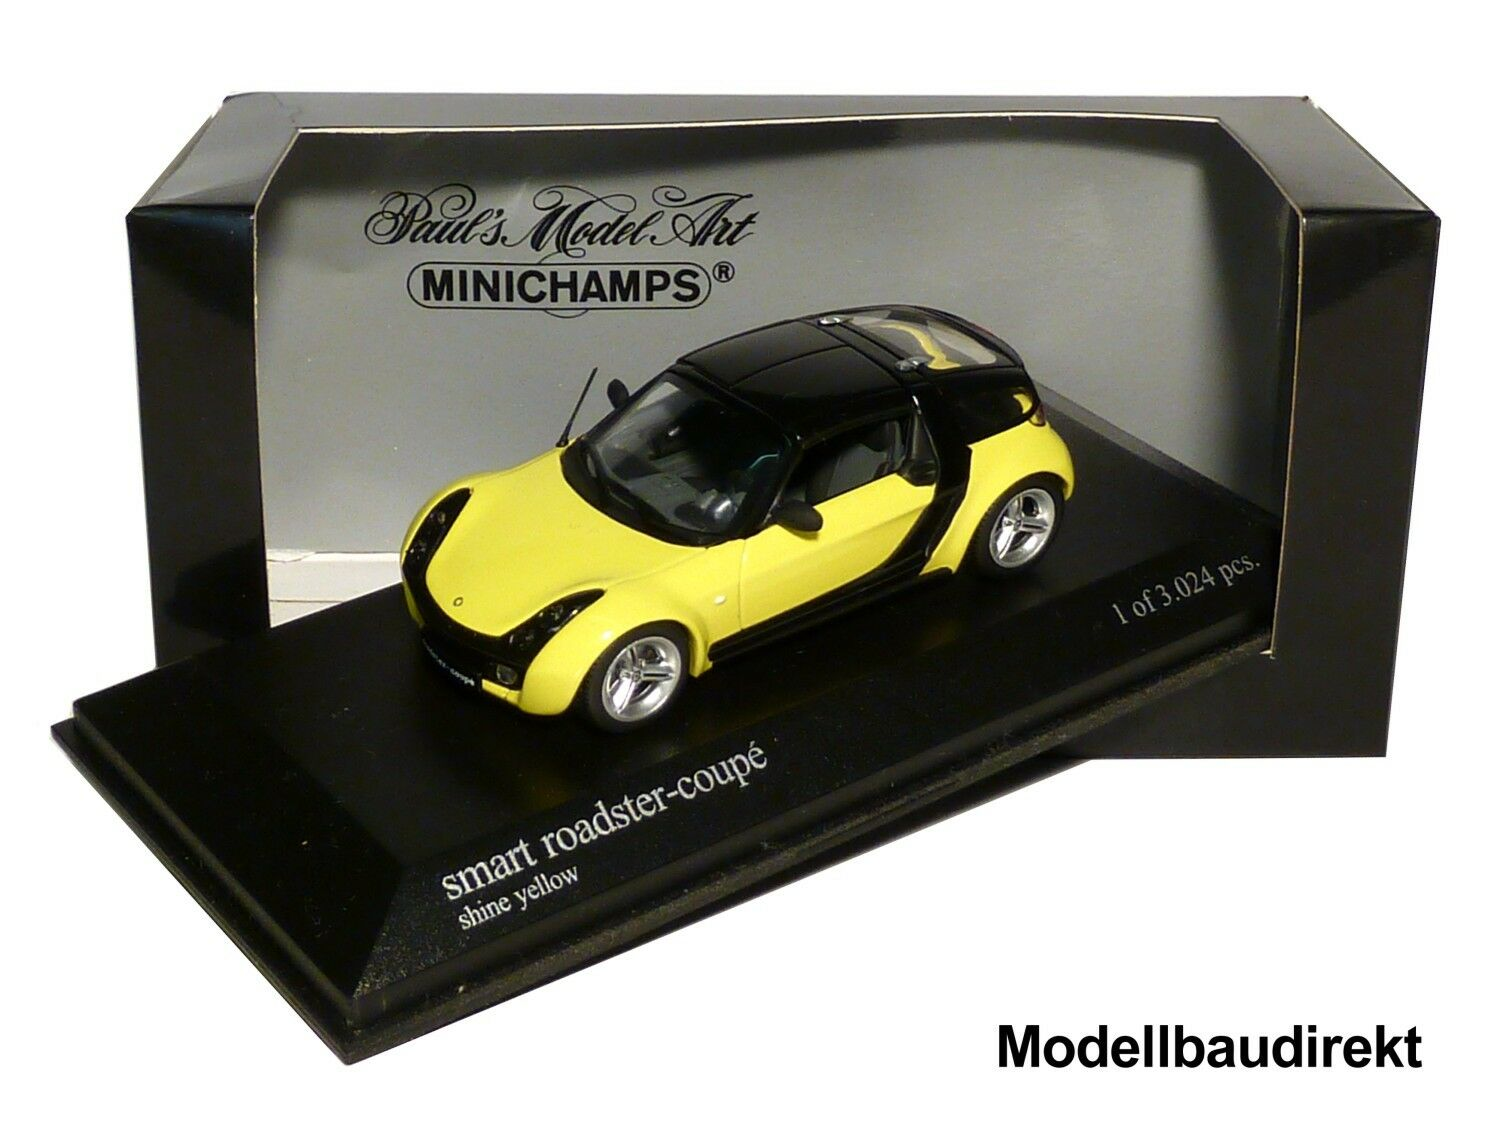 Smart Roadster Coupe in gelb Bj 2003 1 43 Minichamps 400032120 NEU & OVP  | Outlet Online